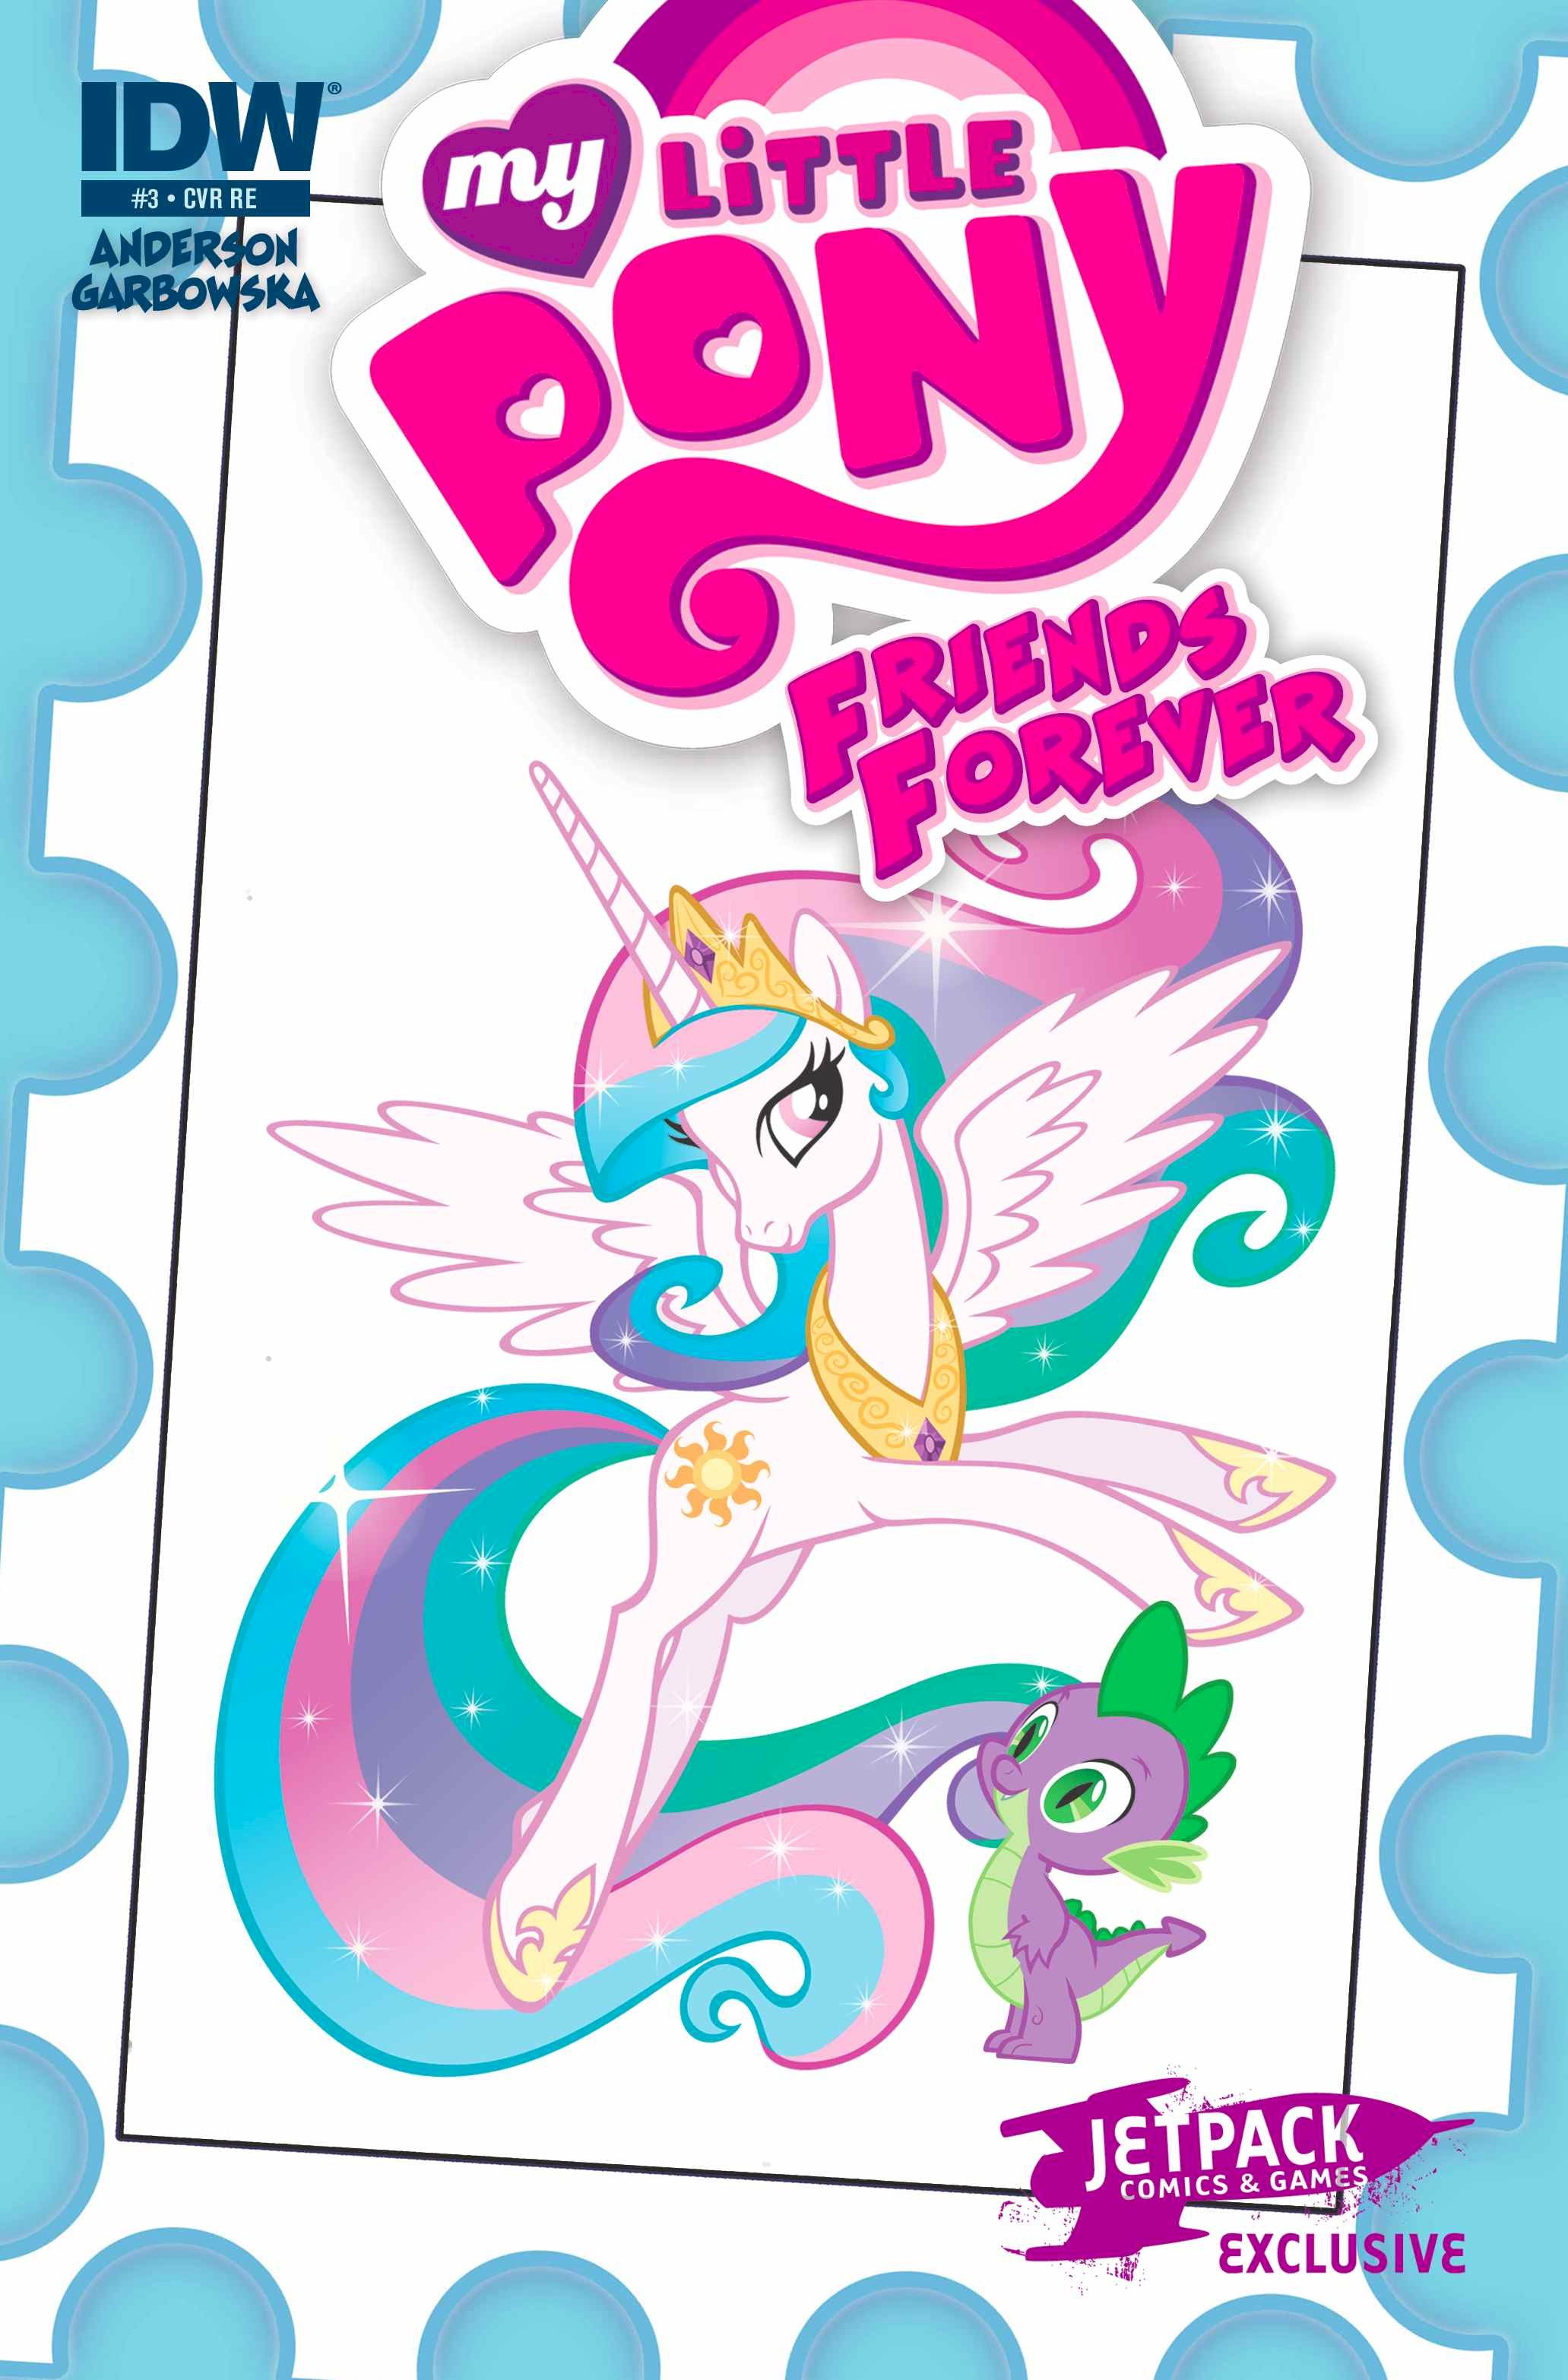 MY LITTLE PONY FRIENDS FOREVER #3 (Jetpack Comics B Micro Print Edition )